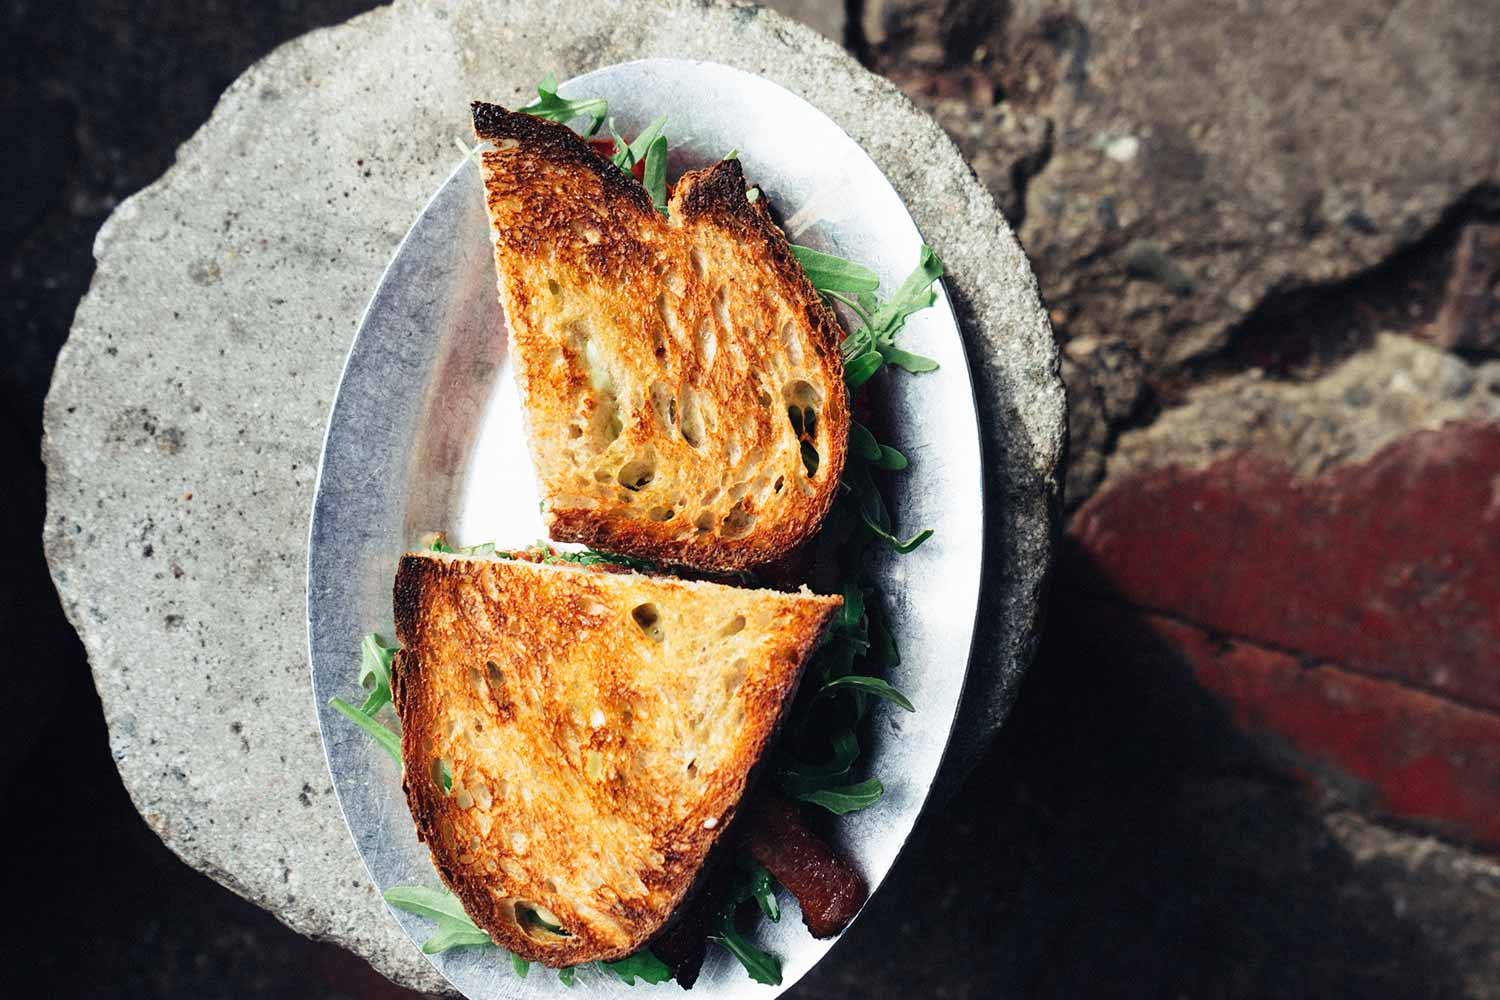 a toasted sandwich on a decorative plate